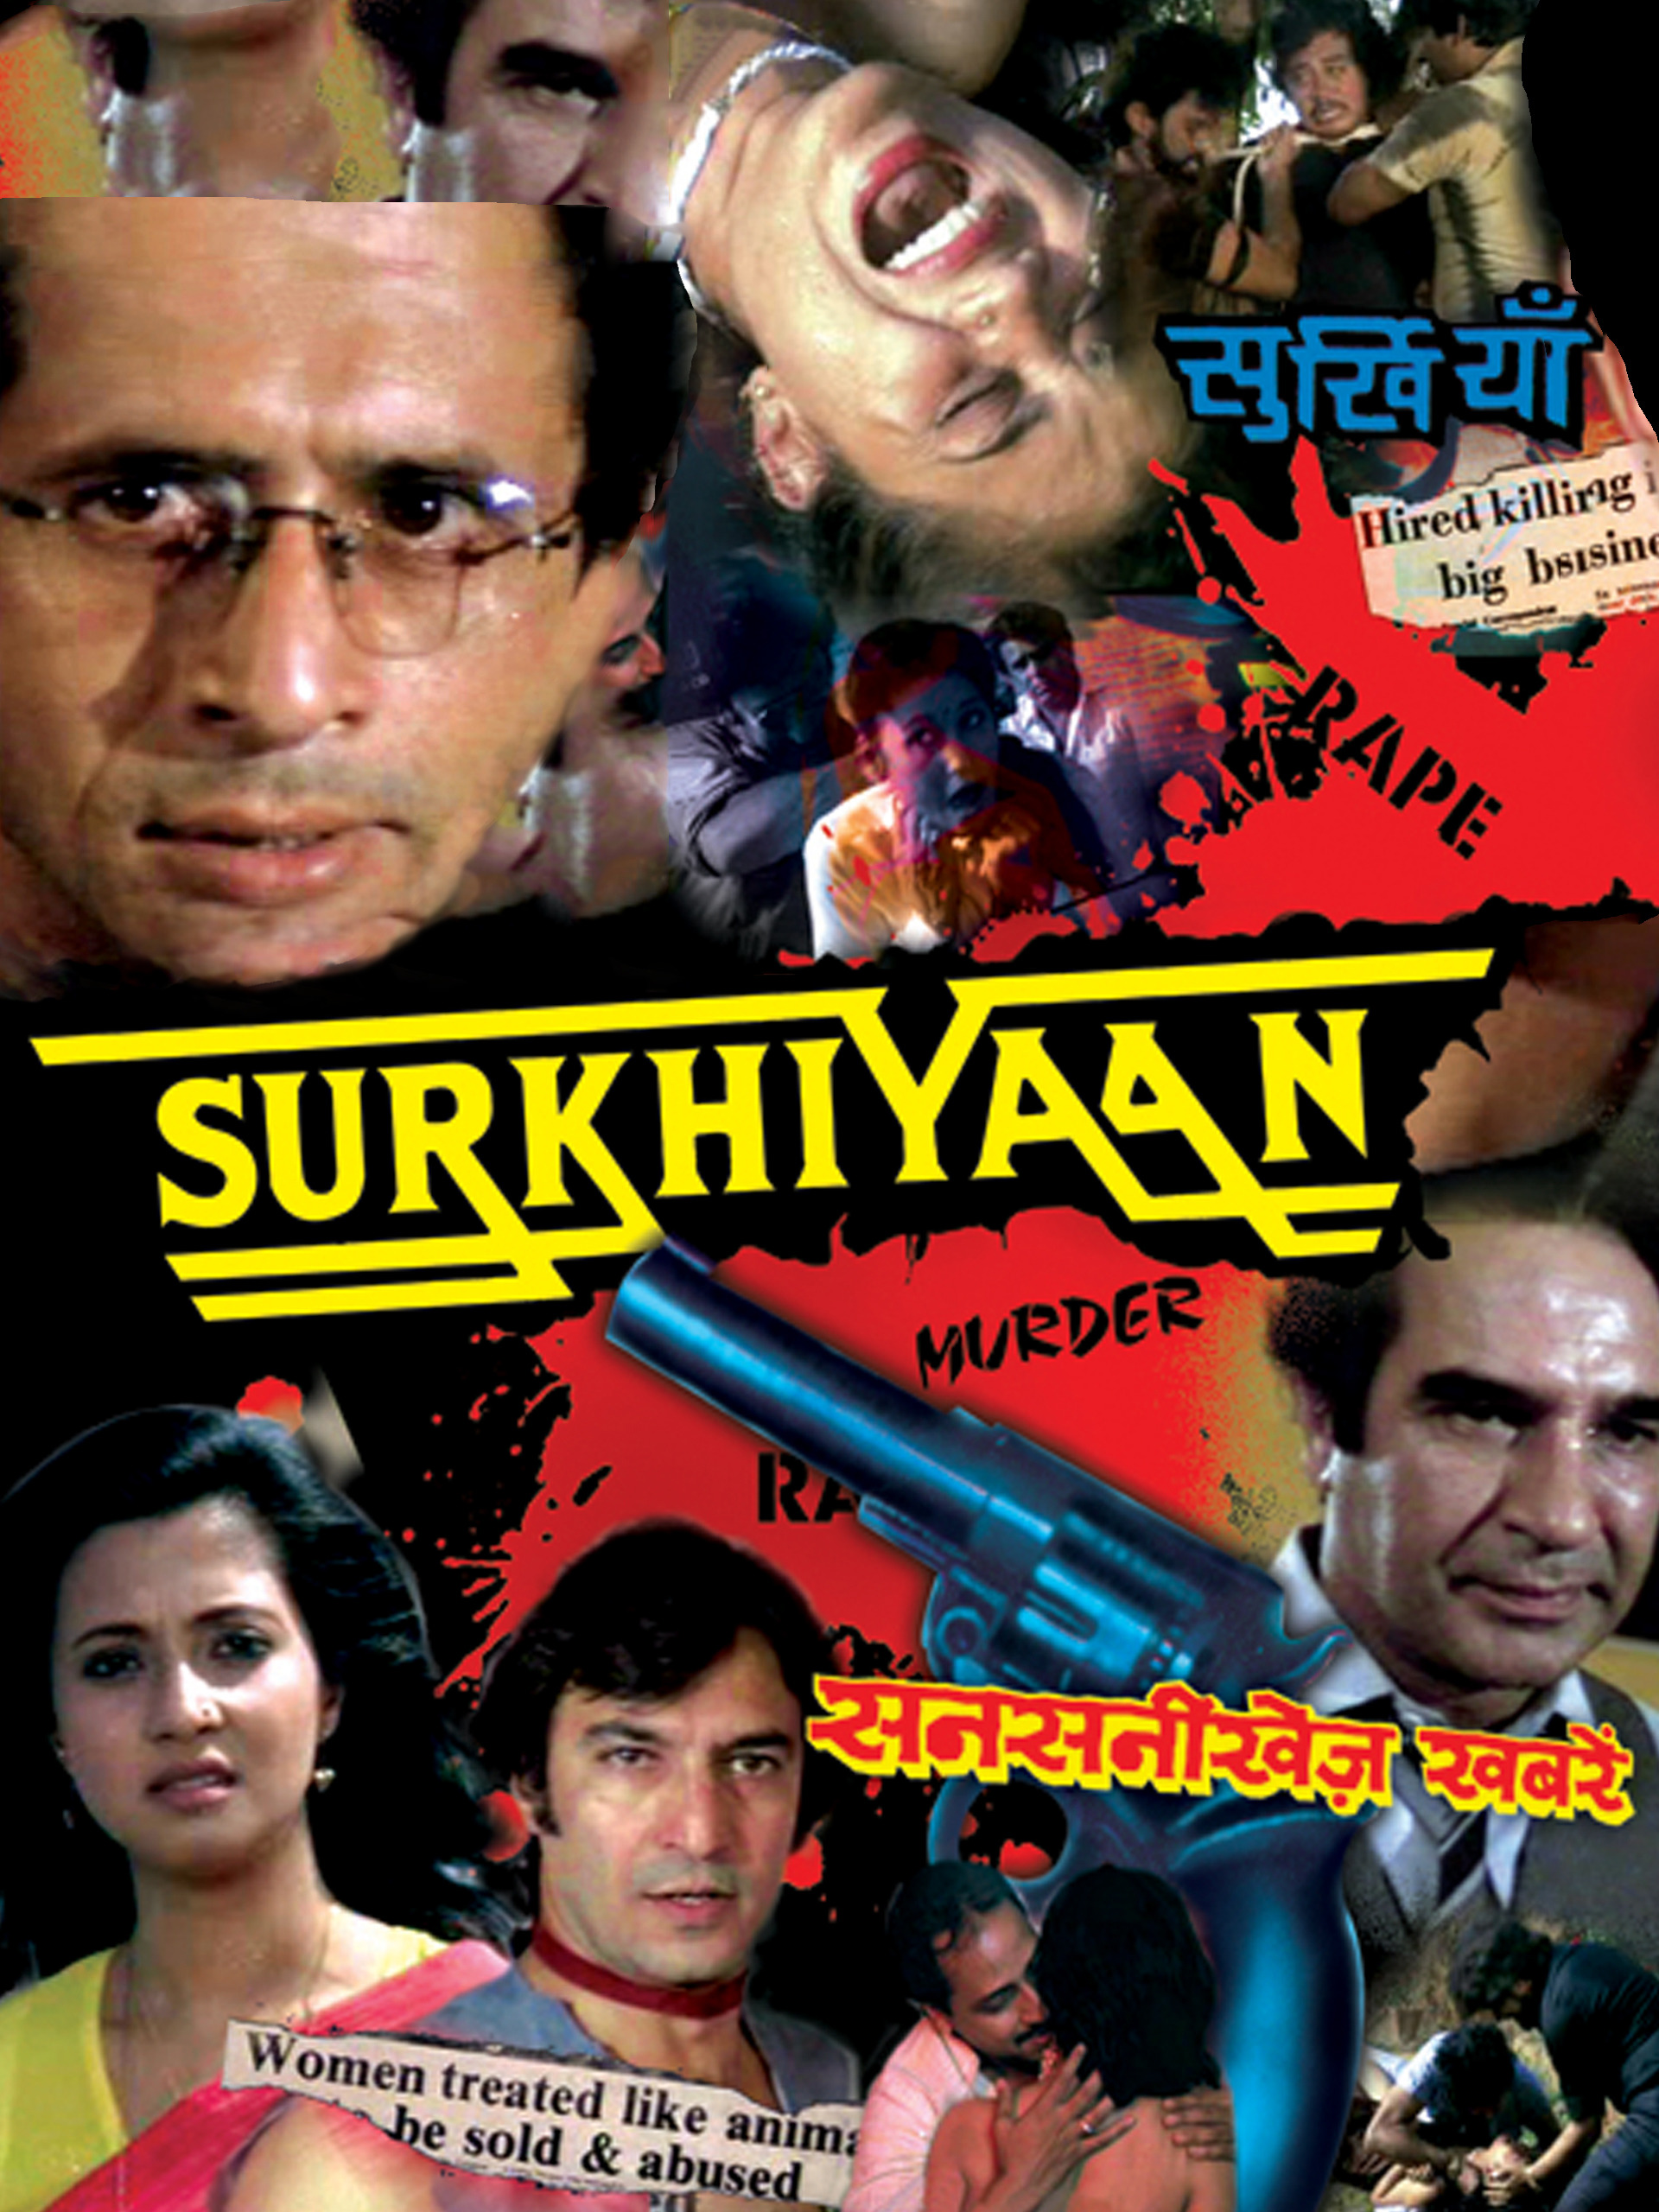 Surkhiyaan Movie Reviews Release Date Songs Music Images Official Trailers Videos Photos News Bollywood Hungama